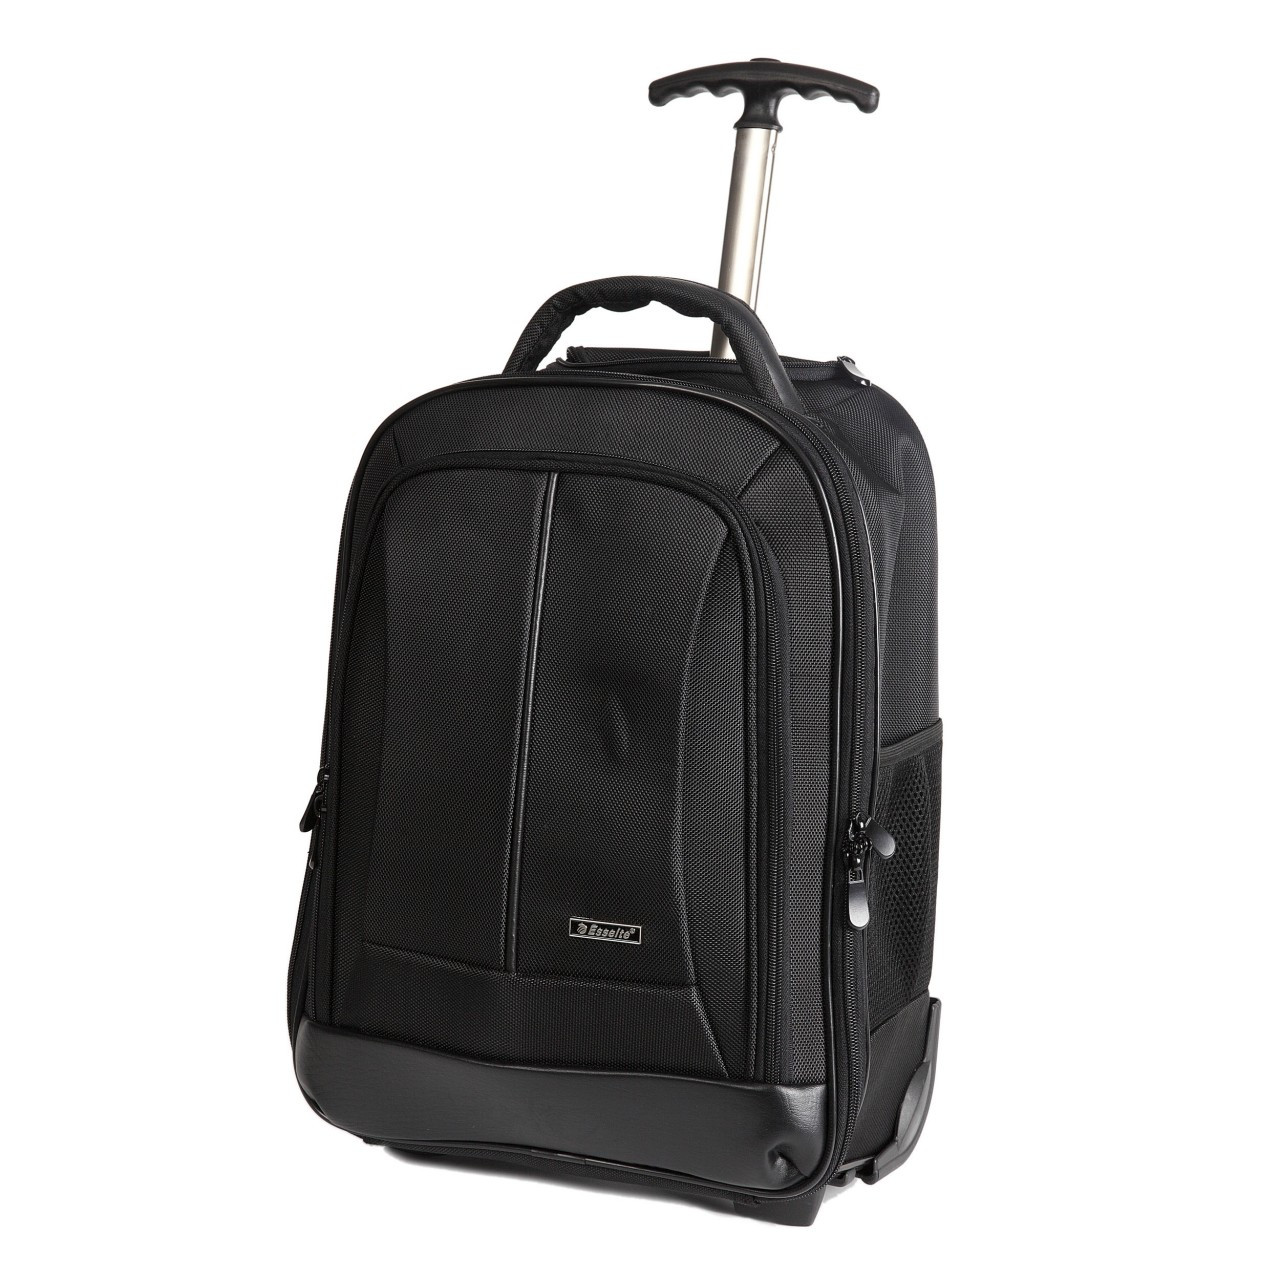 Esselte Light Cabin Luggage Bag (Upright With Wheels)